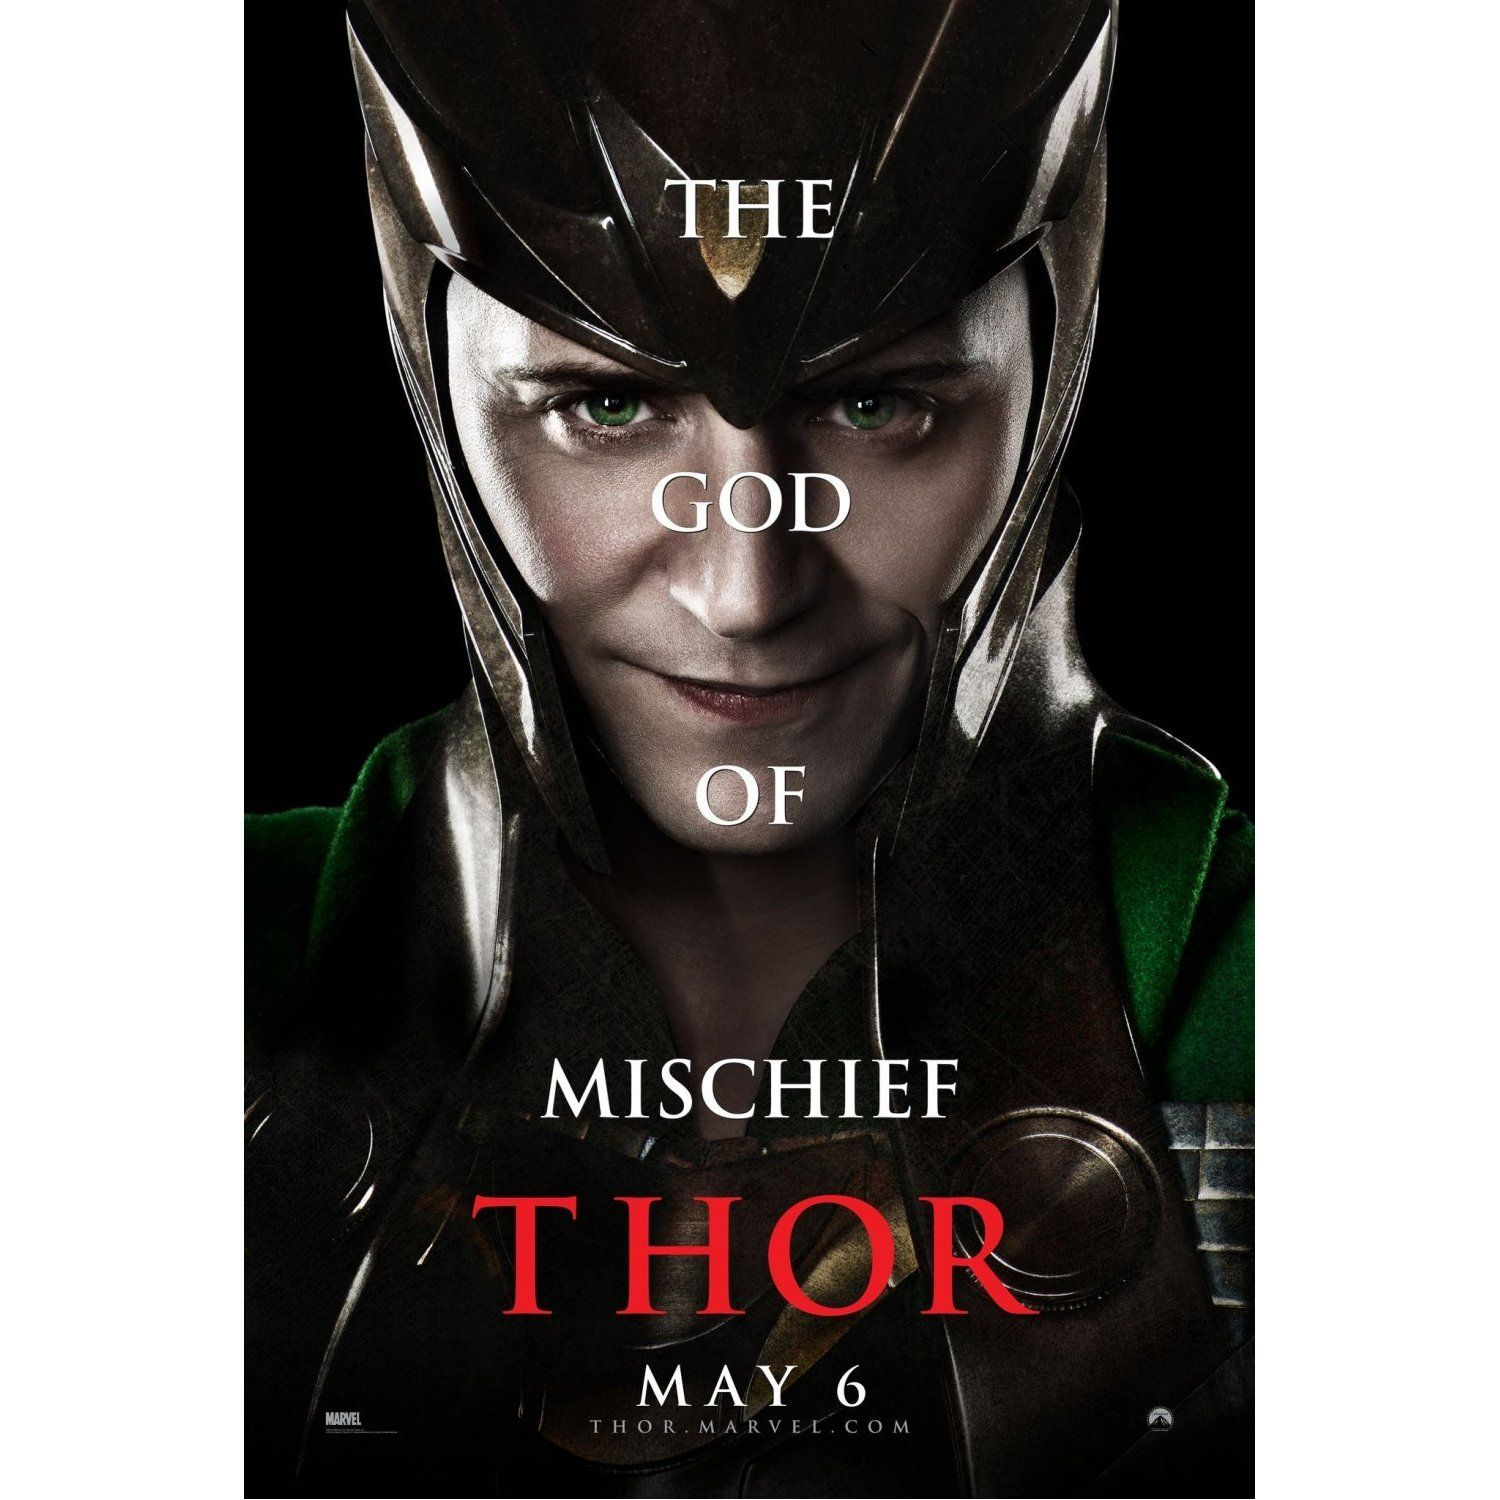 thor movie- tom huddleston as Loki is great, but he's been great in other stuff. he should be a big name one day.